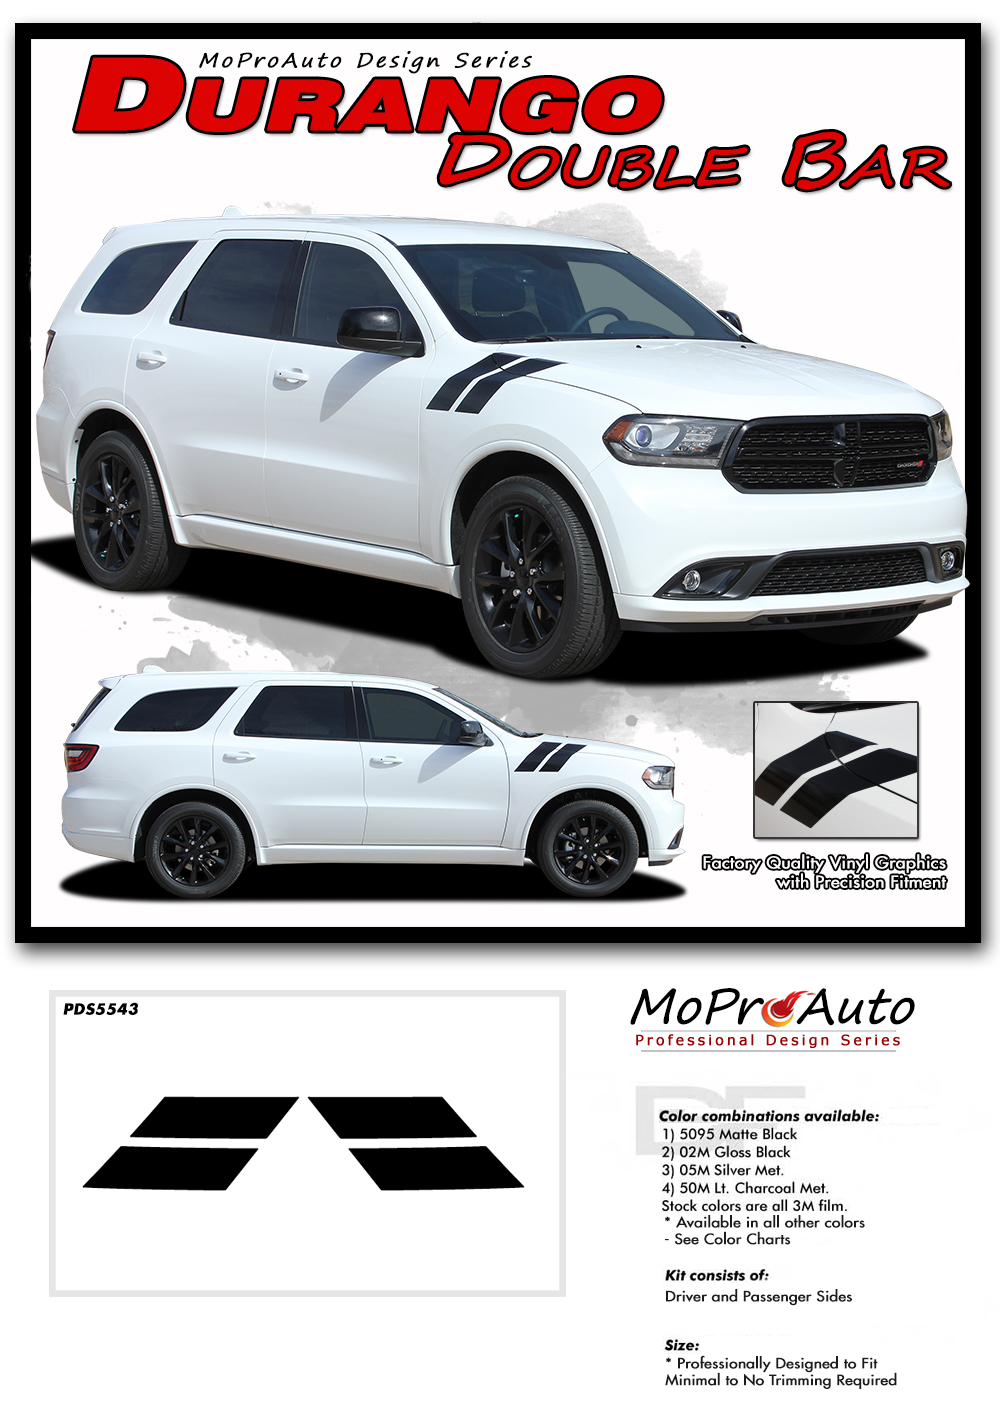 DODGE DURANGO DOUBLE BAR HASH HOOD MARKS - MoProAuto Pro Design Series Vinyl Graphics and Decals Kit